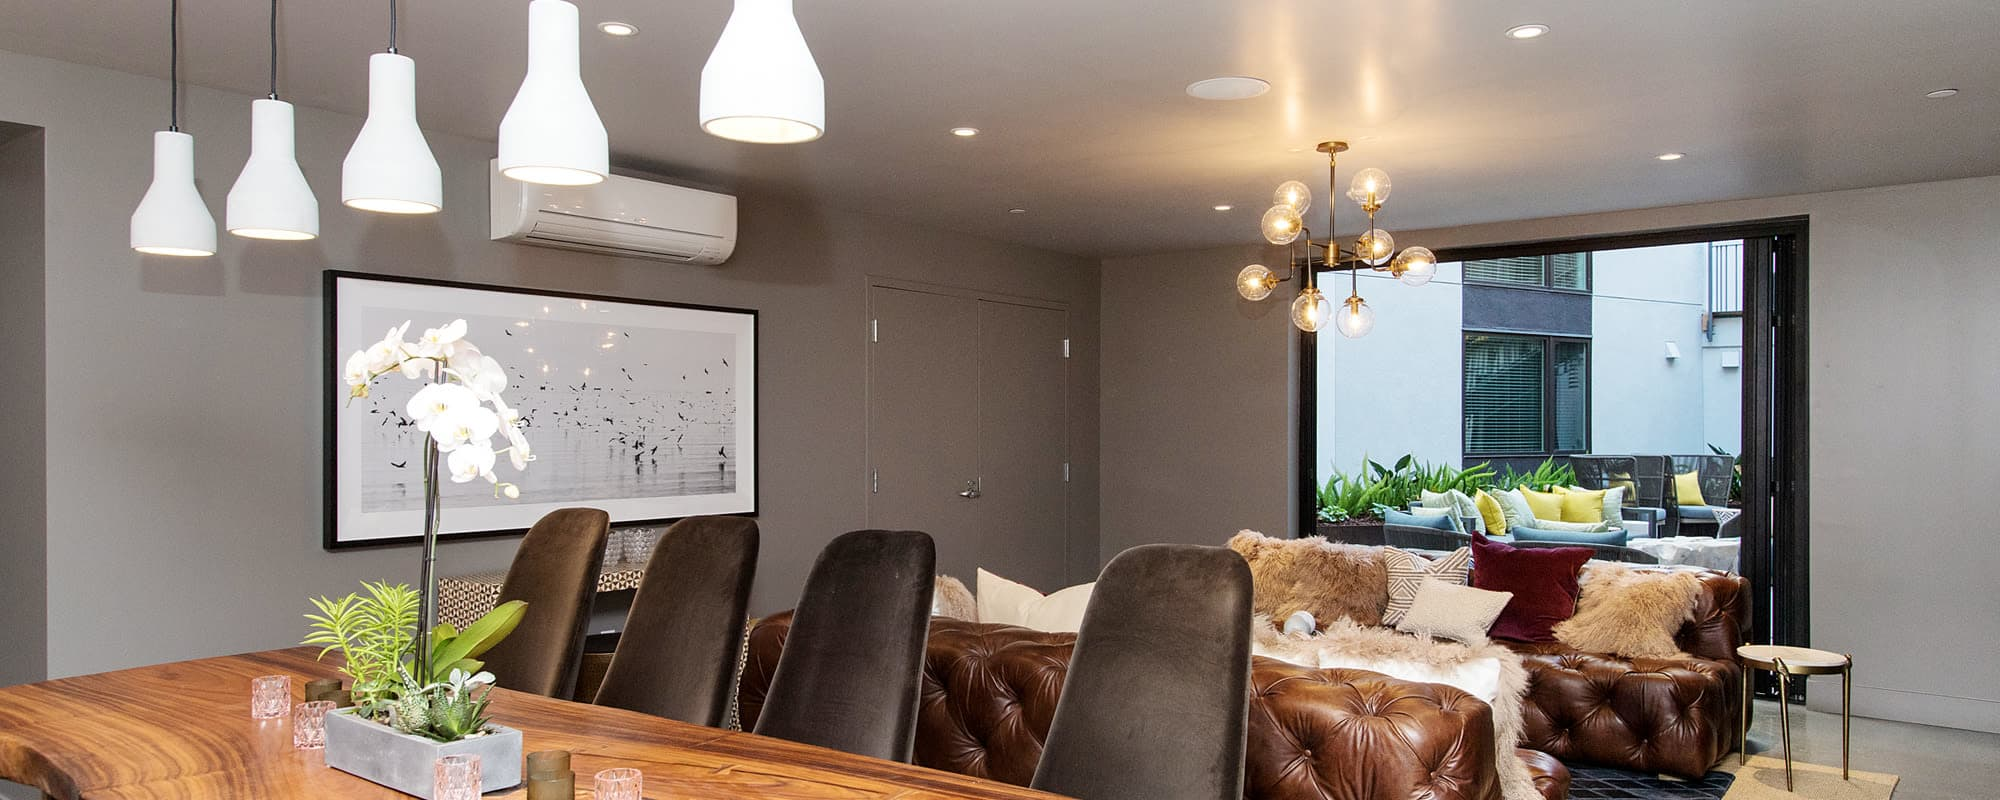 Resident Lounge For Dinner Parties & Hanging Out at The Moran